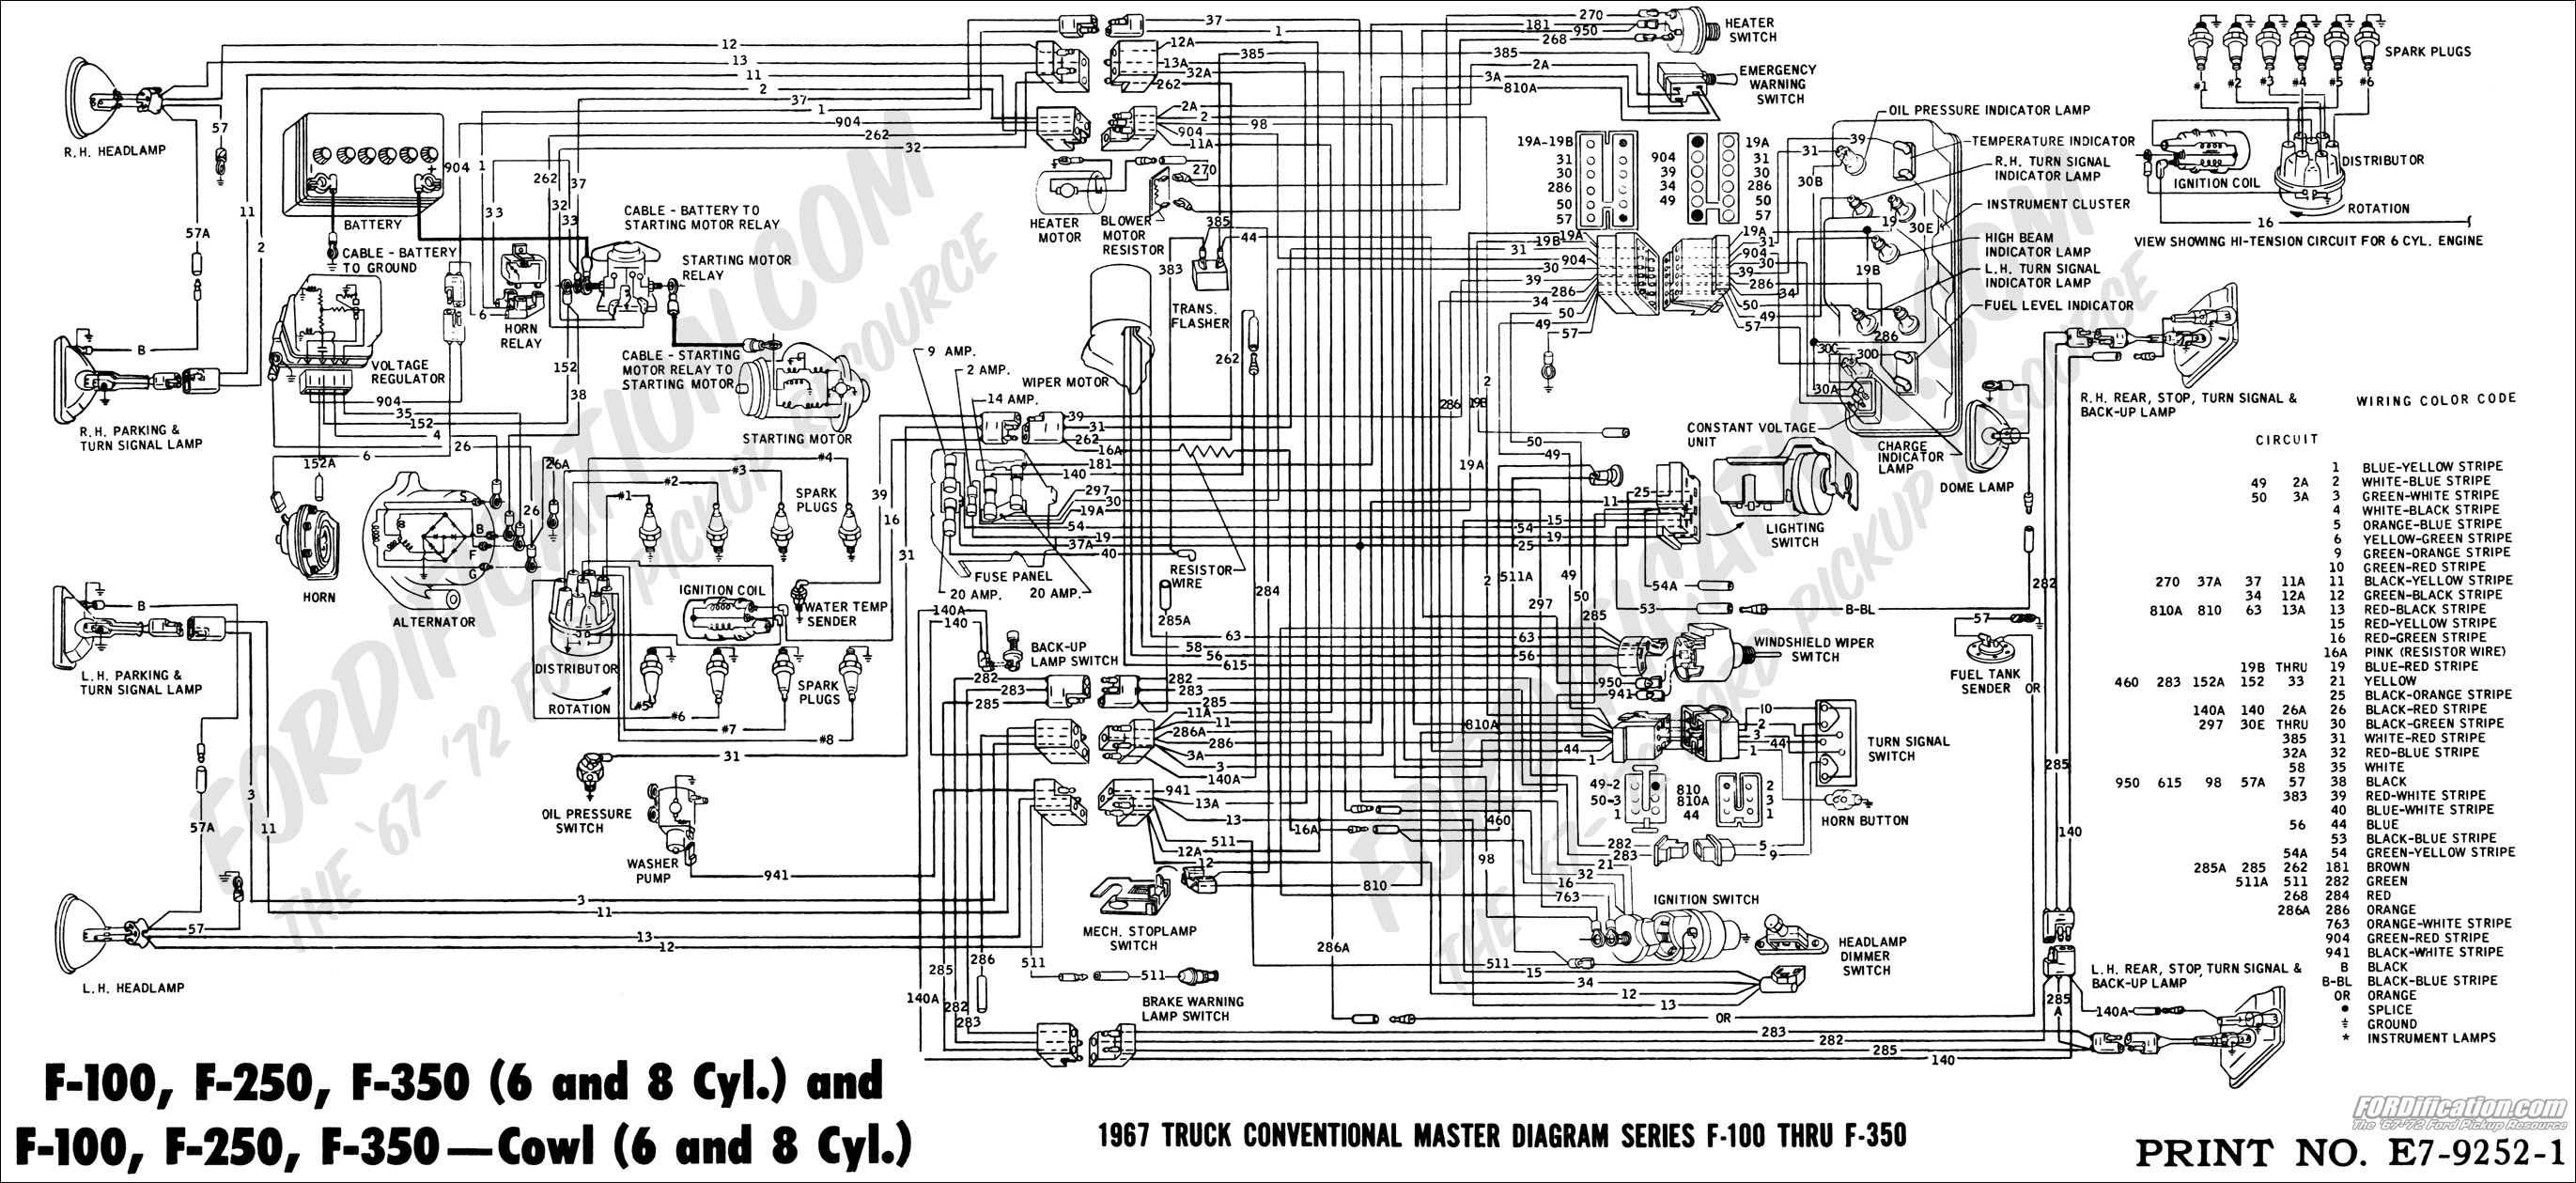 F100 Wiring Diagram Data Solenoid Switch For X 9000 1979 Ford 1980